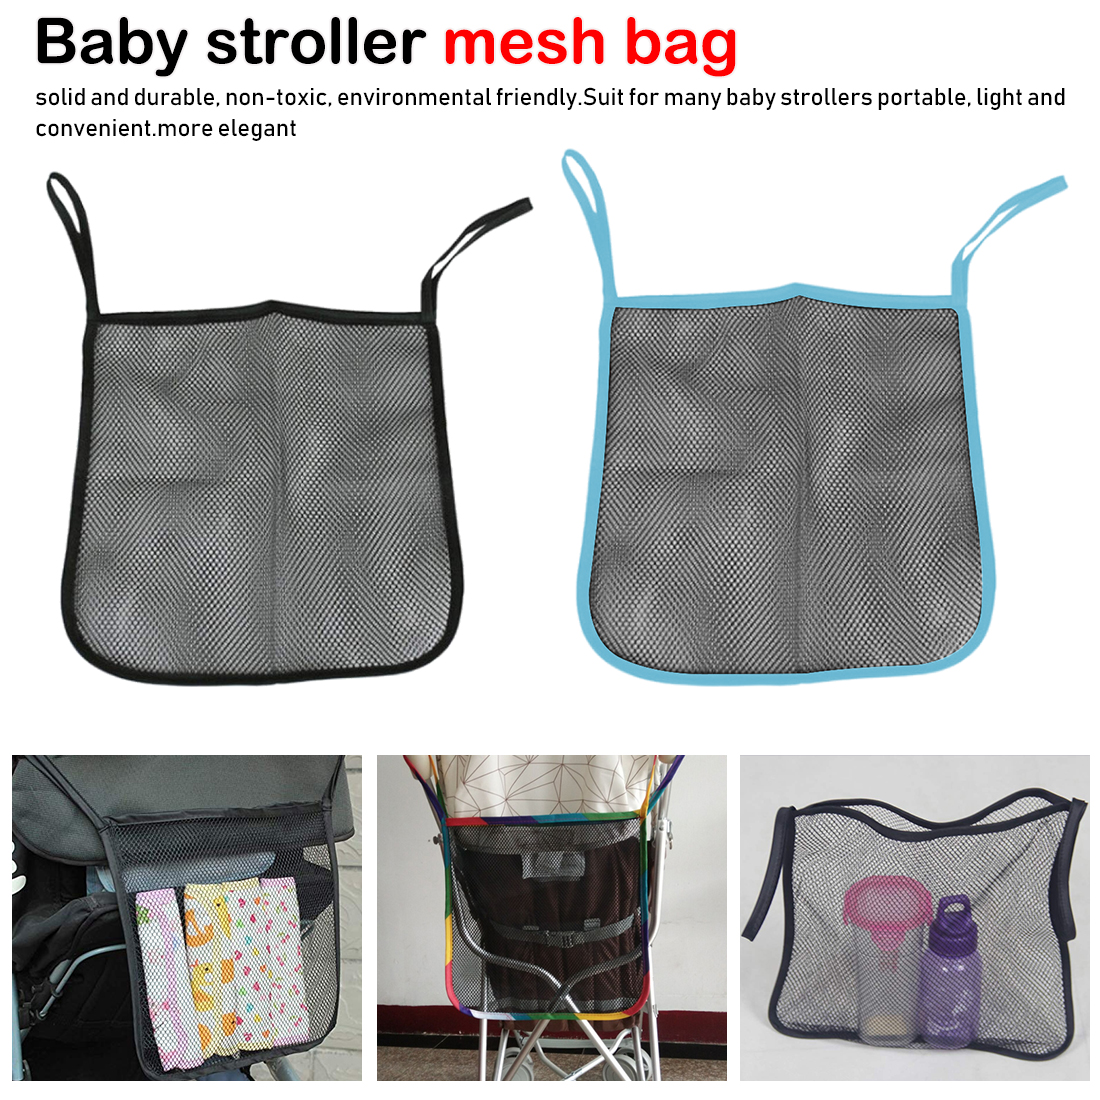 Hot Infant Pram Cart Mesh Hanging Storage Bag Baby Trolley Bag Stroller Organizer Seat Pocket Carriage Bag Stroller Accessories(China)